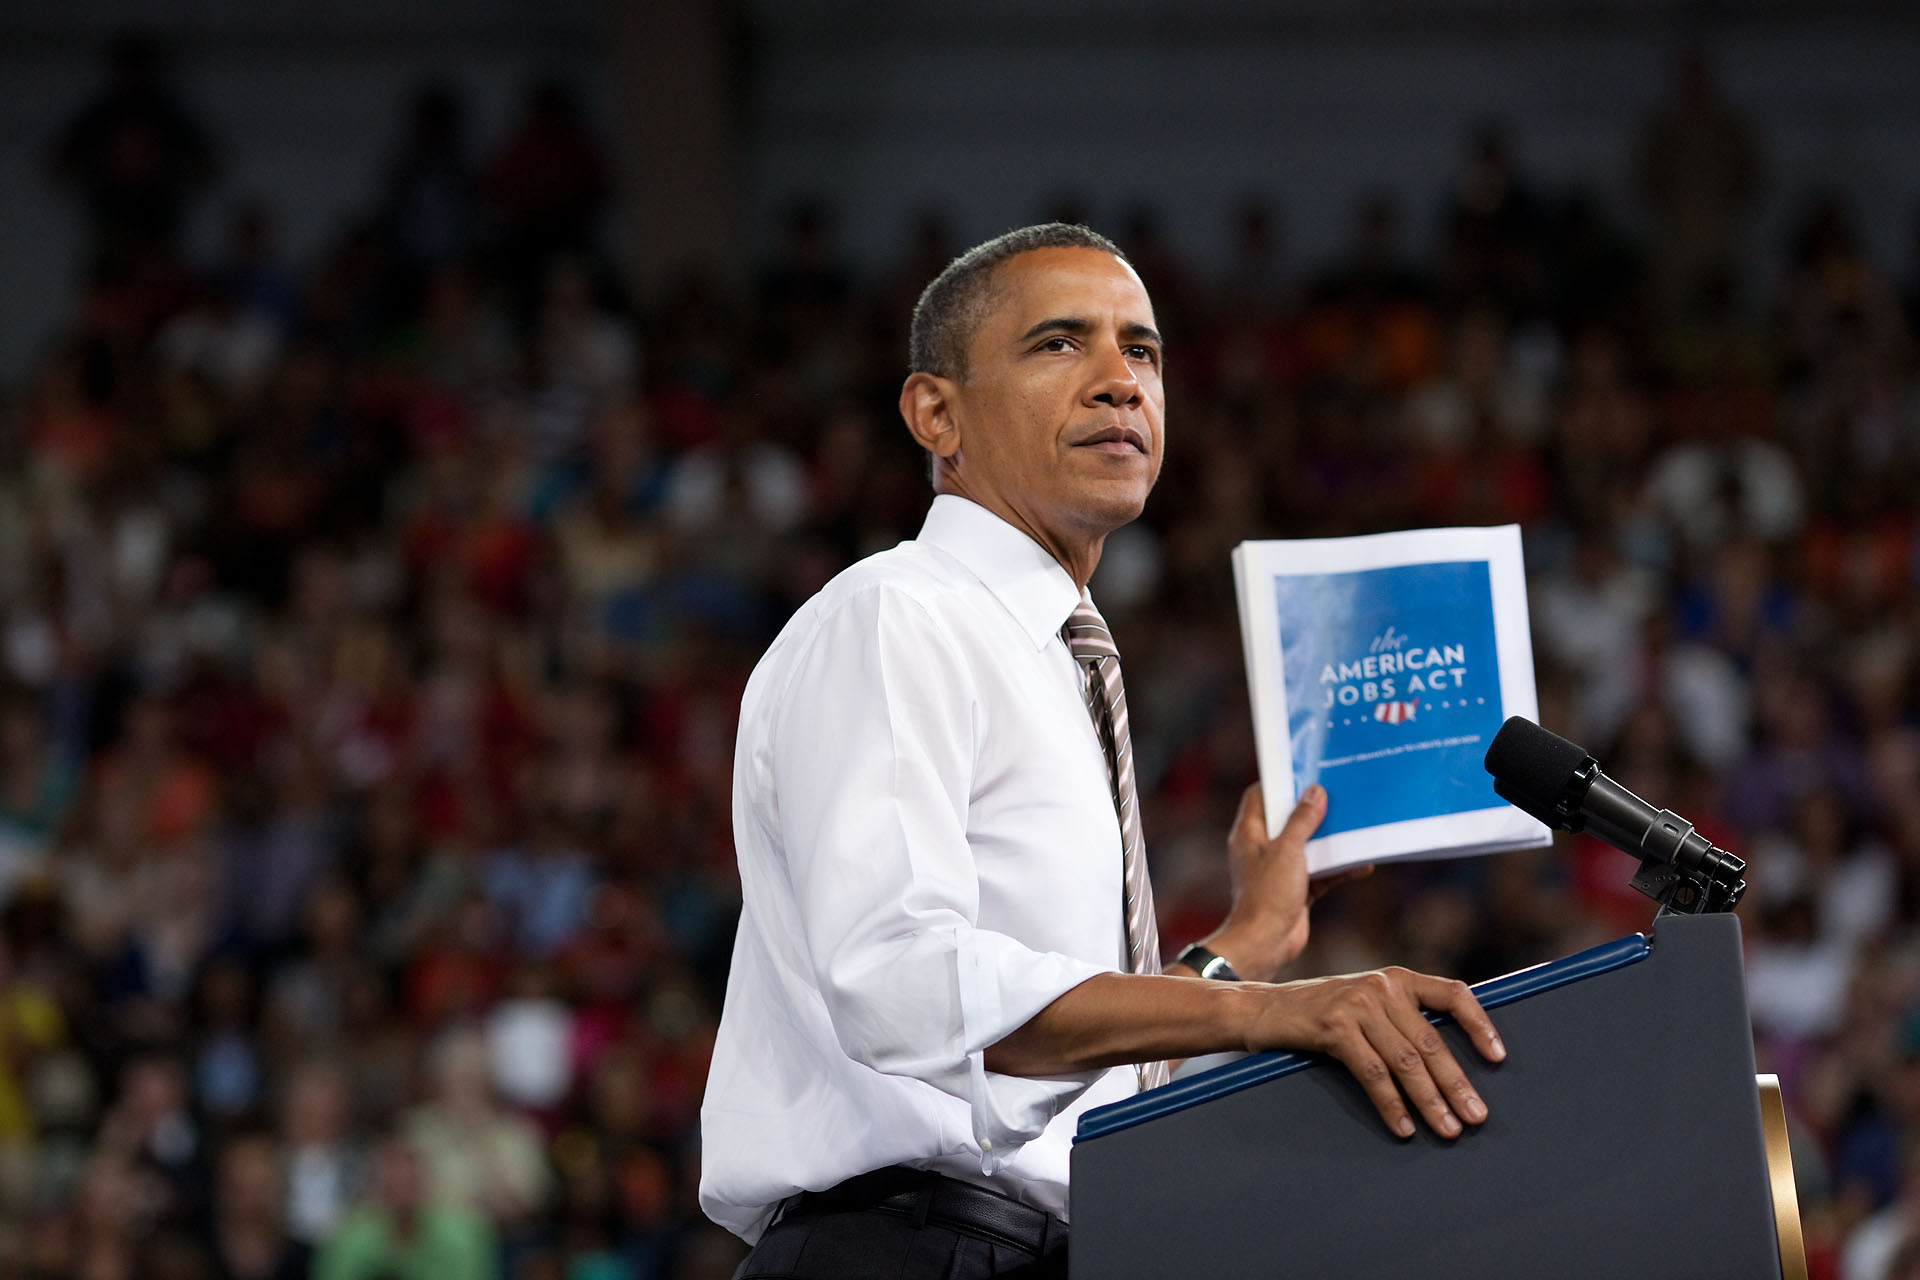 President Barack Obama delivers remarks on the American Jobs Act in N.C.